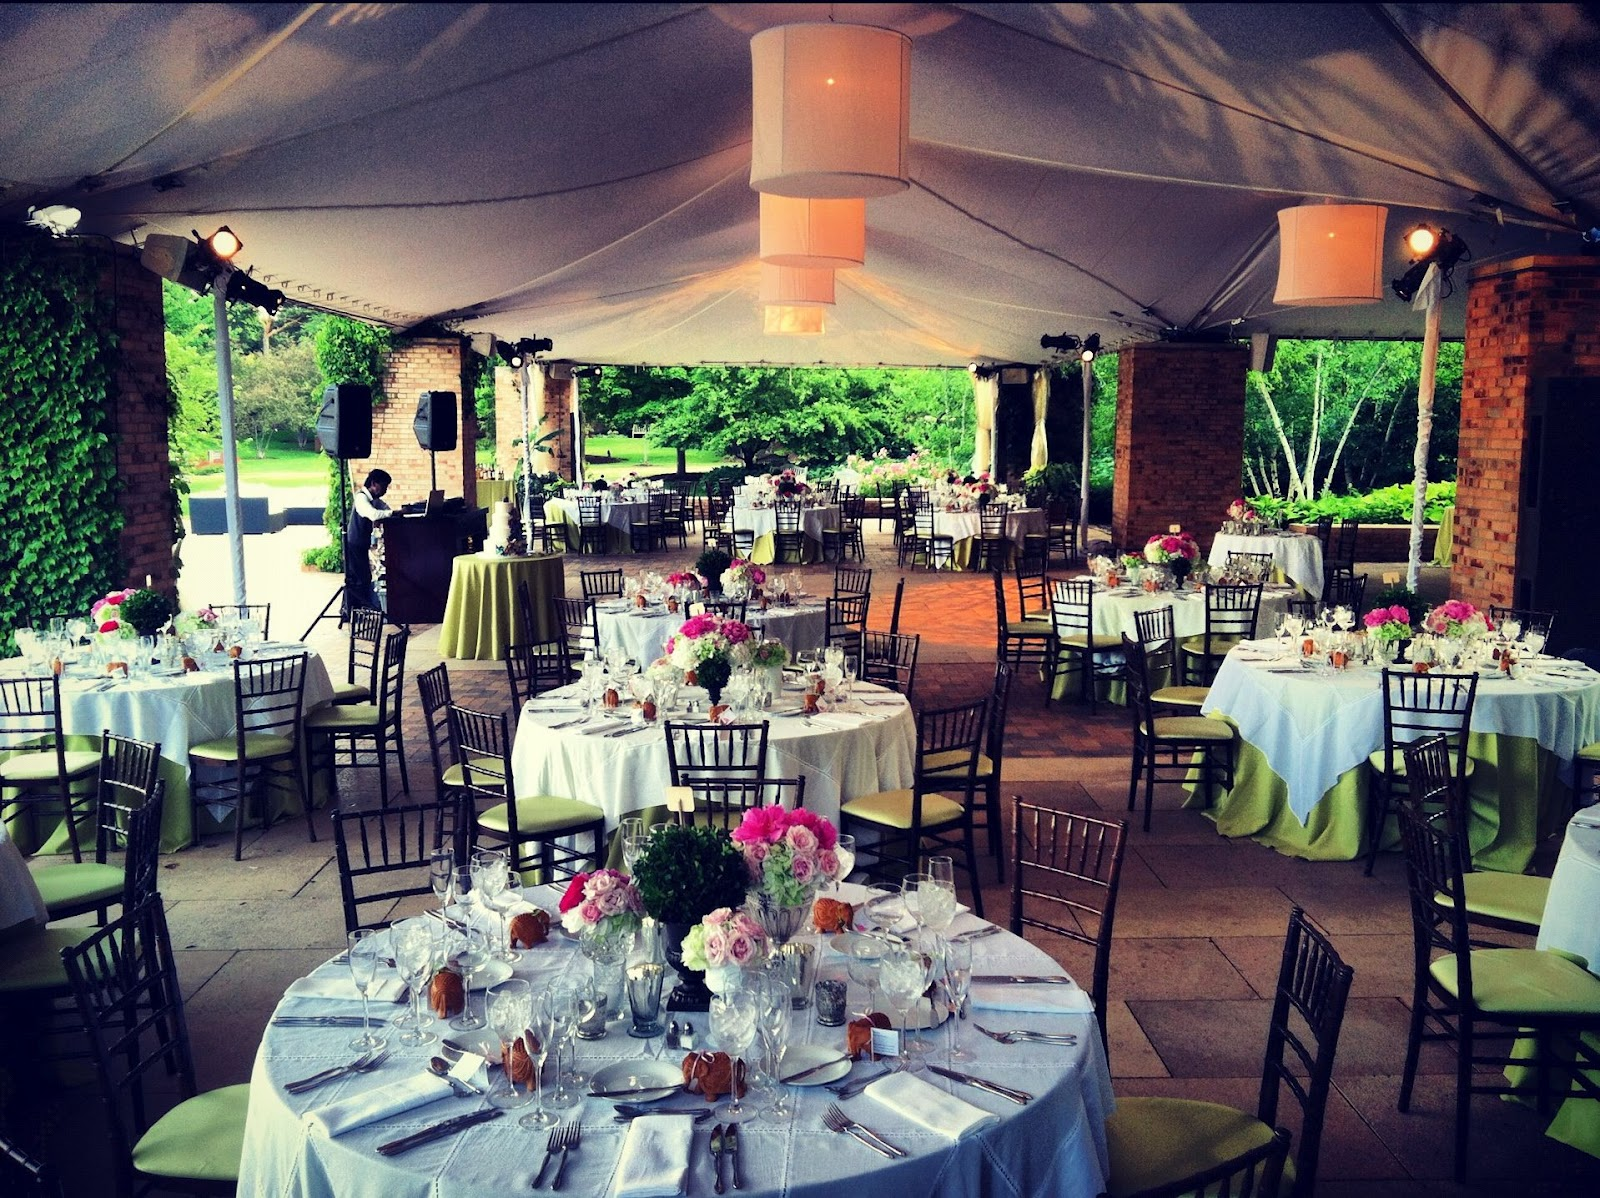 Liven It Up Events Corporate Affairs Boutique Weddings And Social Soirees In Chicago